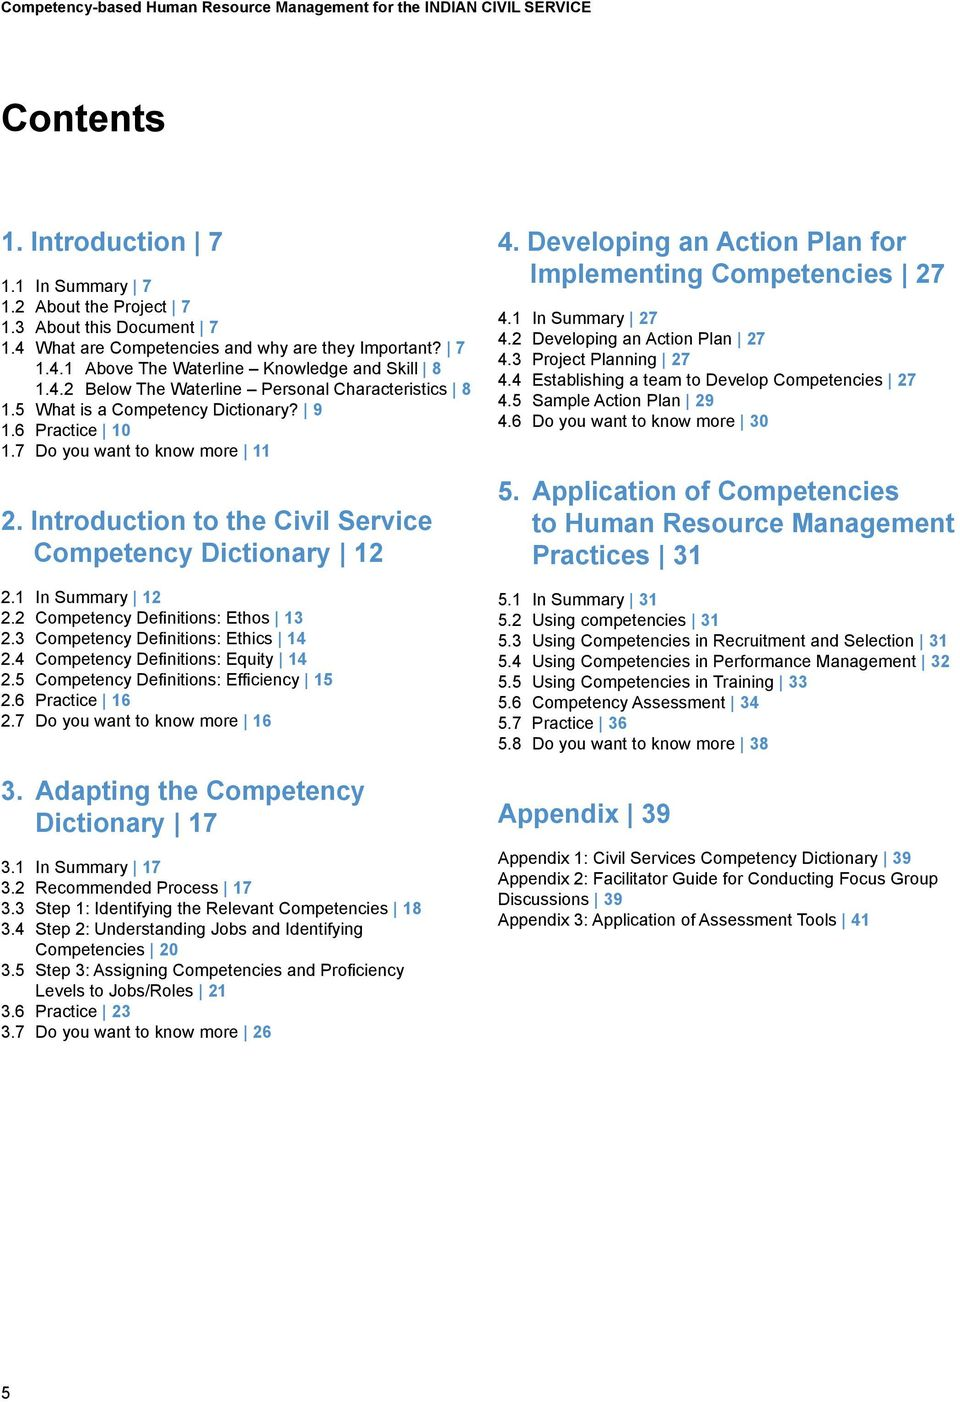 Introduction to the Civil Service Competency Dictionary 12 2.1 In Summary 12 2.2 Competency Definitions: Ethos 13 2.3 Competency Definitions: Ethics 14 2.4 Competency Definitions: Equity 14 2.